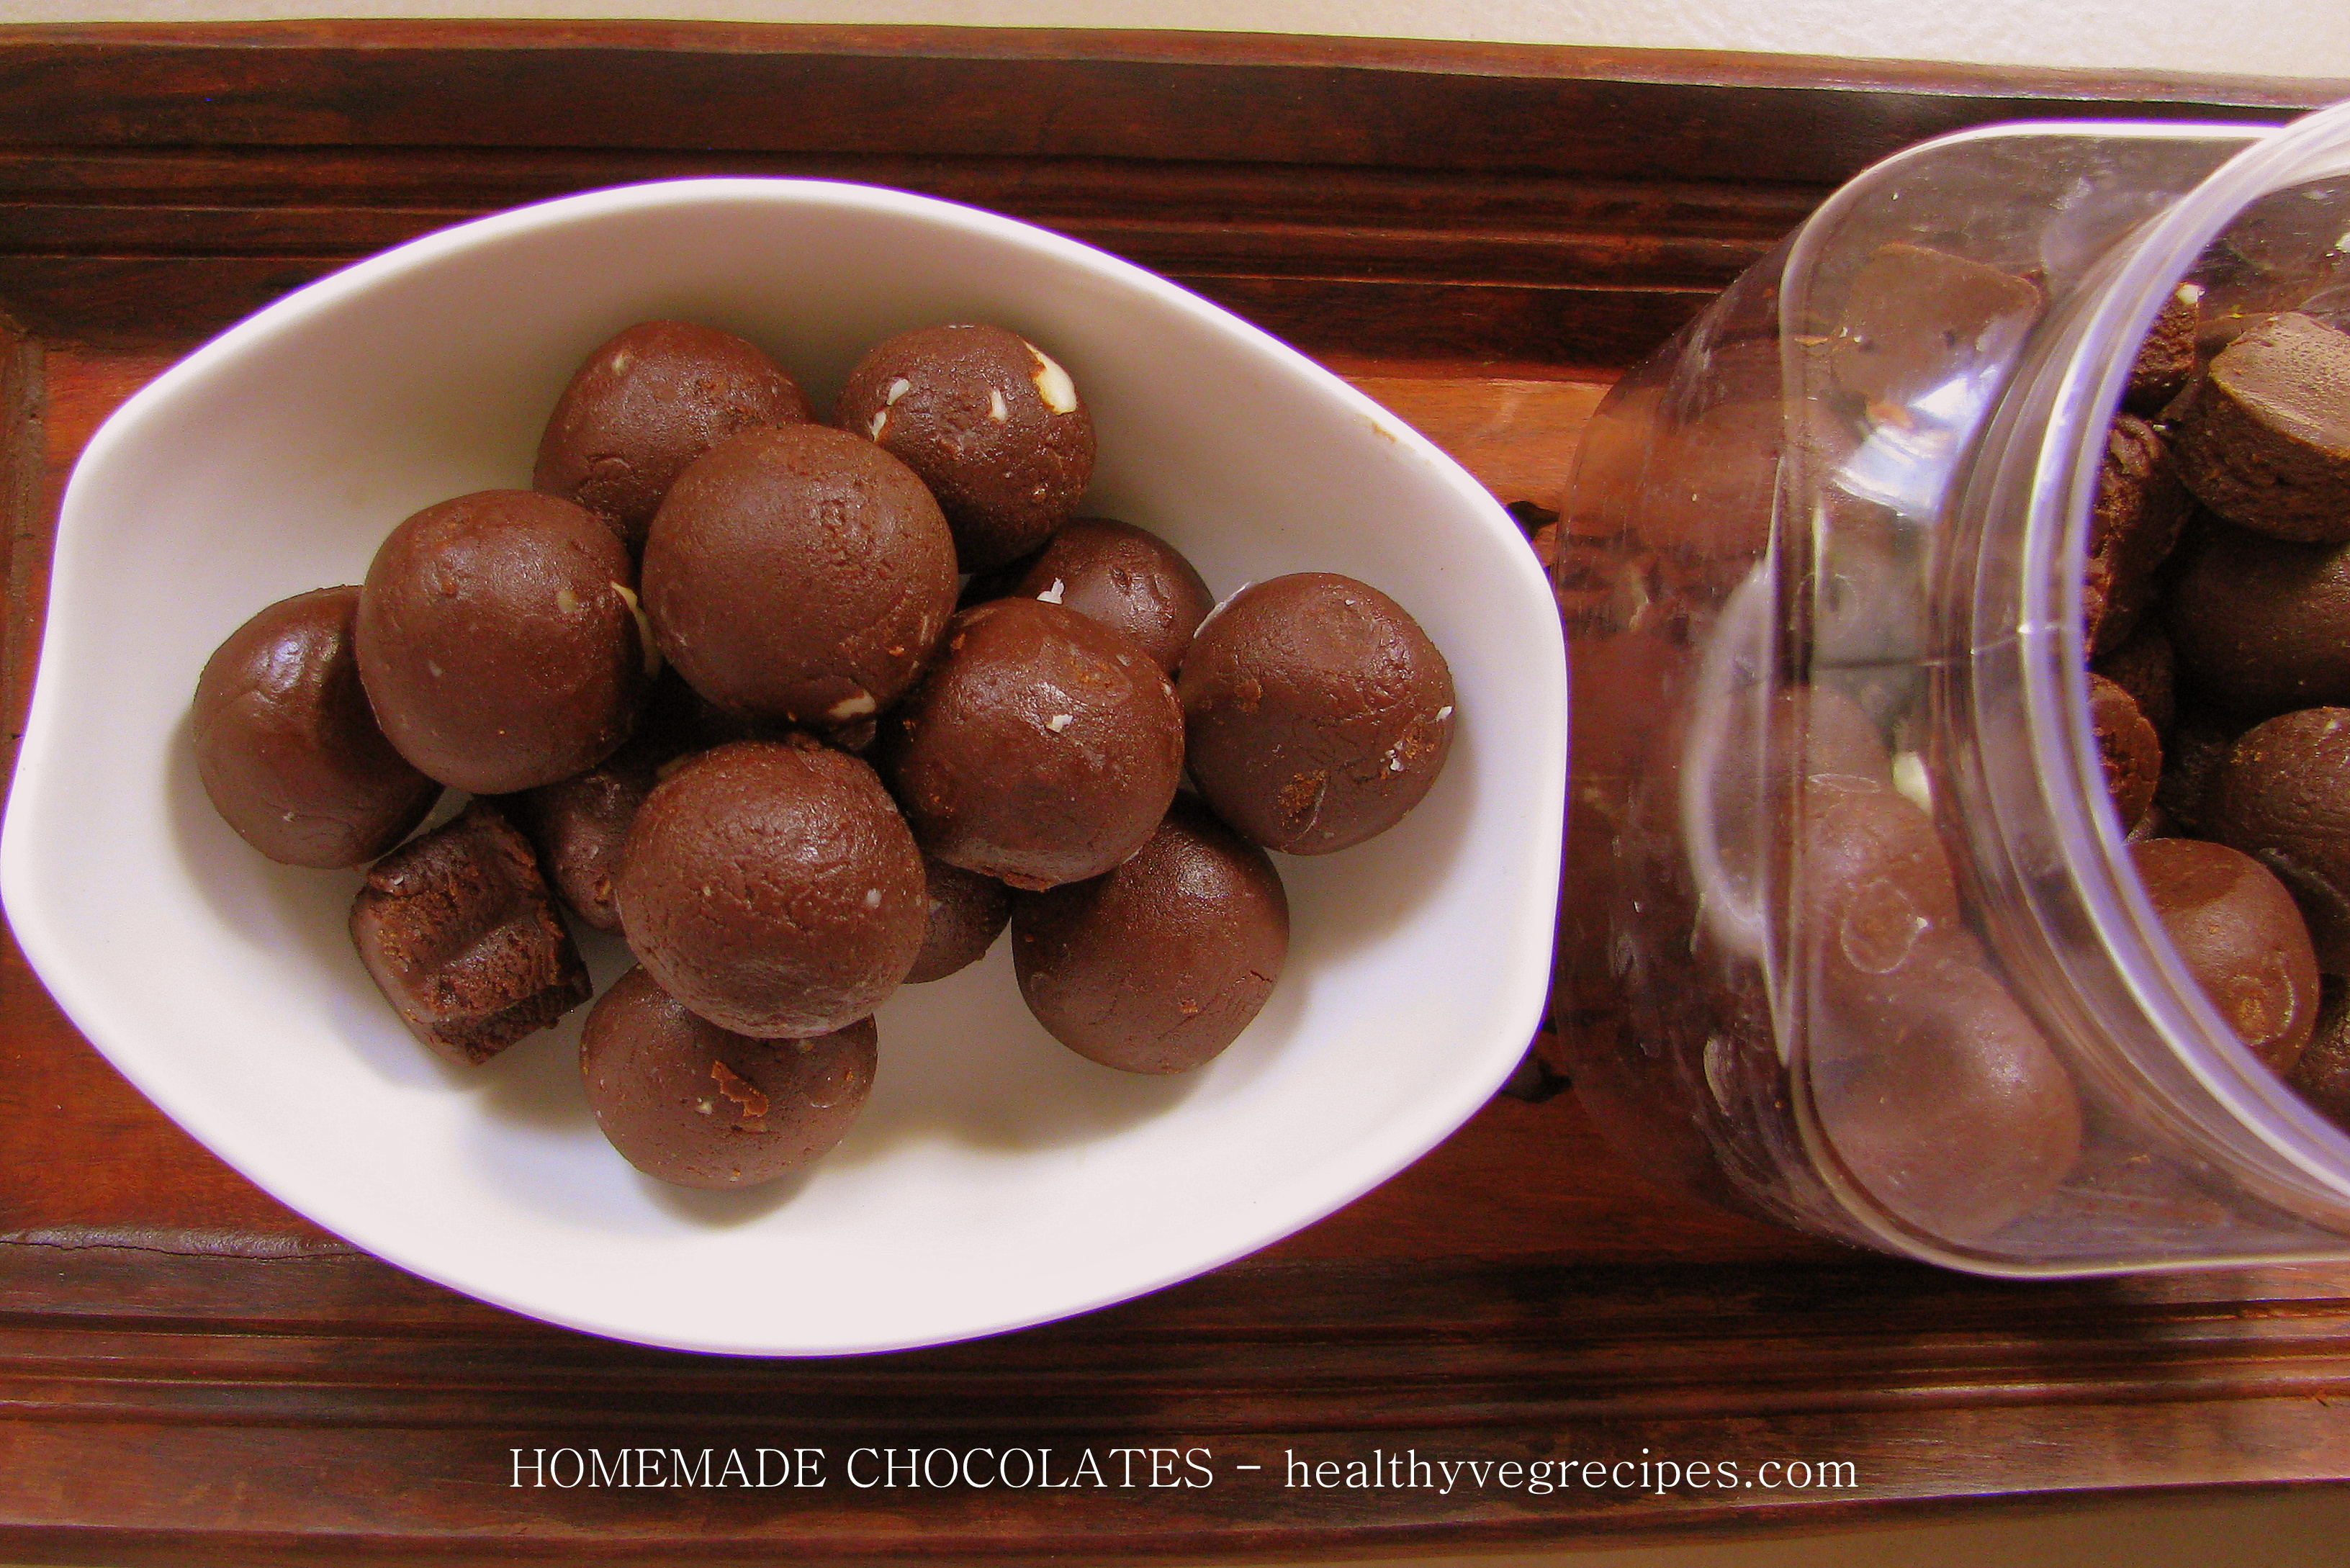 How to make homemade chocolate chocolate recipe from cocoa powder to make chocolate at home from scratch is the dream of everyone when we were kids we used to sing a song asawa sundar chocolate cha bangla its a marathi forumfinder Image collections